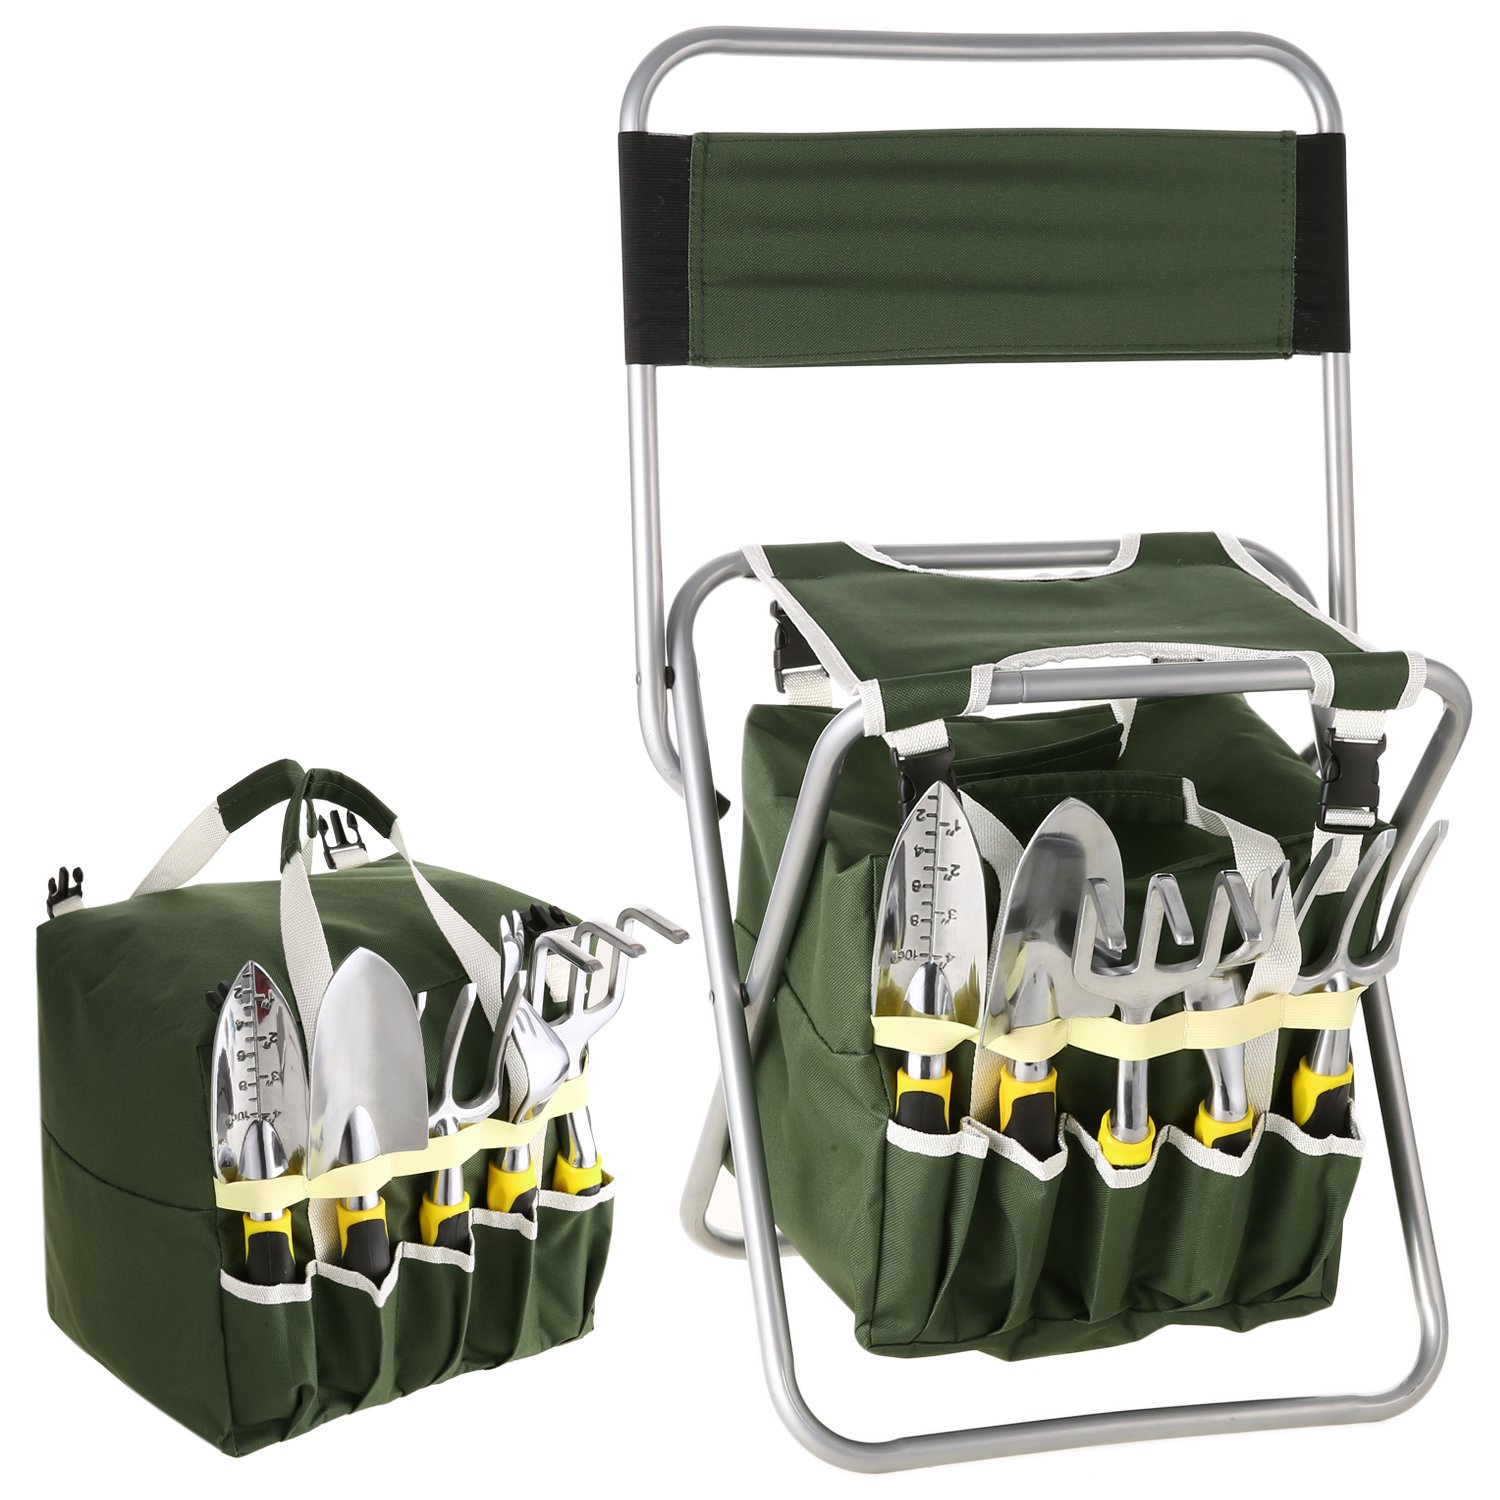 Moroly 10 Piece Garden Tool Set with 5 Sturdy Stainless Steel Tools,Heavy Duty Folding Seat Stool with Backrest,Detachable Canvas Tote,Best Gardening Gifts Tool Set by Moroly (Image #2)